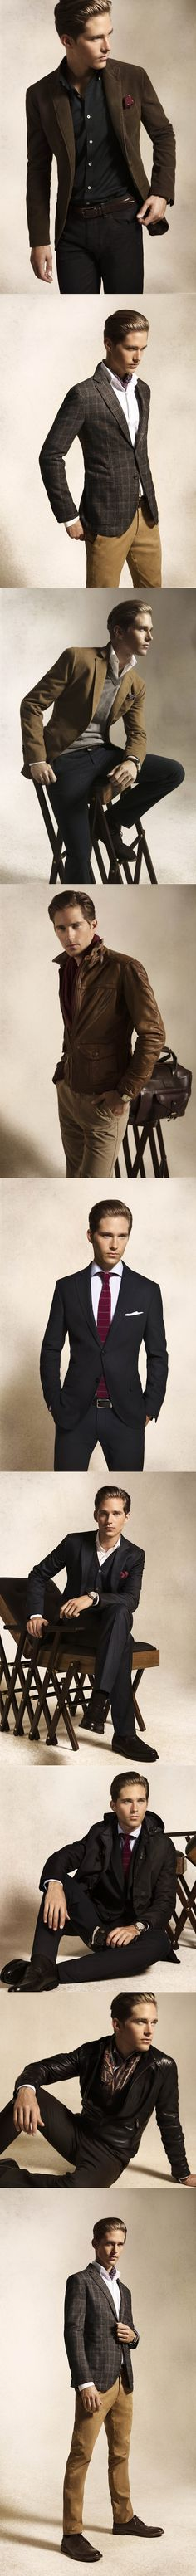 Assorted Suits, Blazers and Dress Pants, by Massimo Dutti. Men's Fall Winter Fashion.